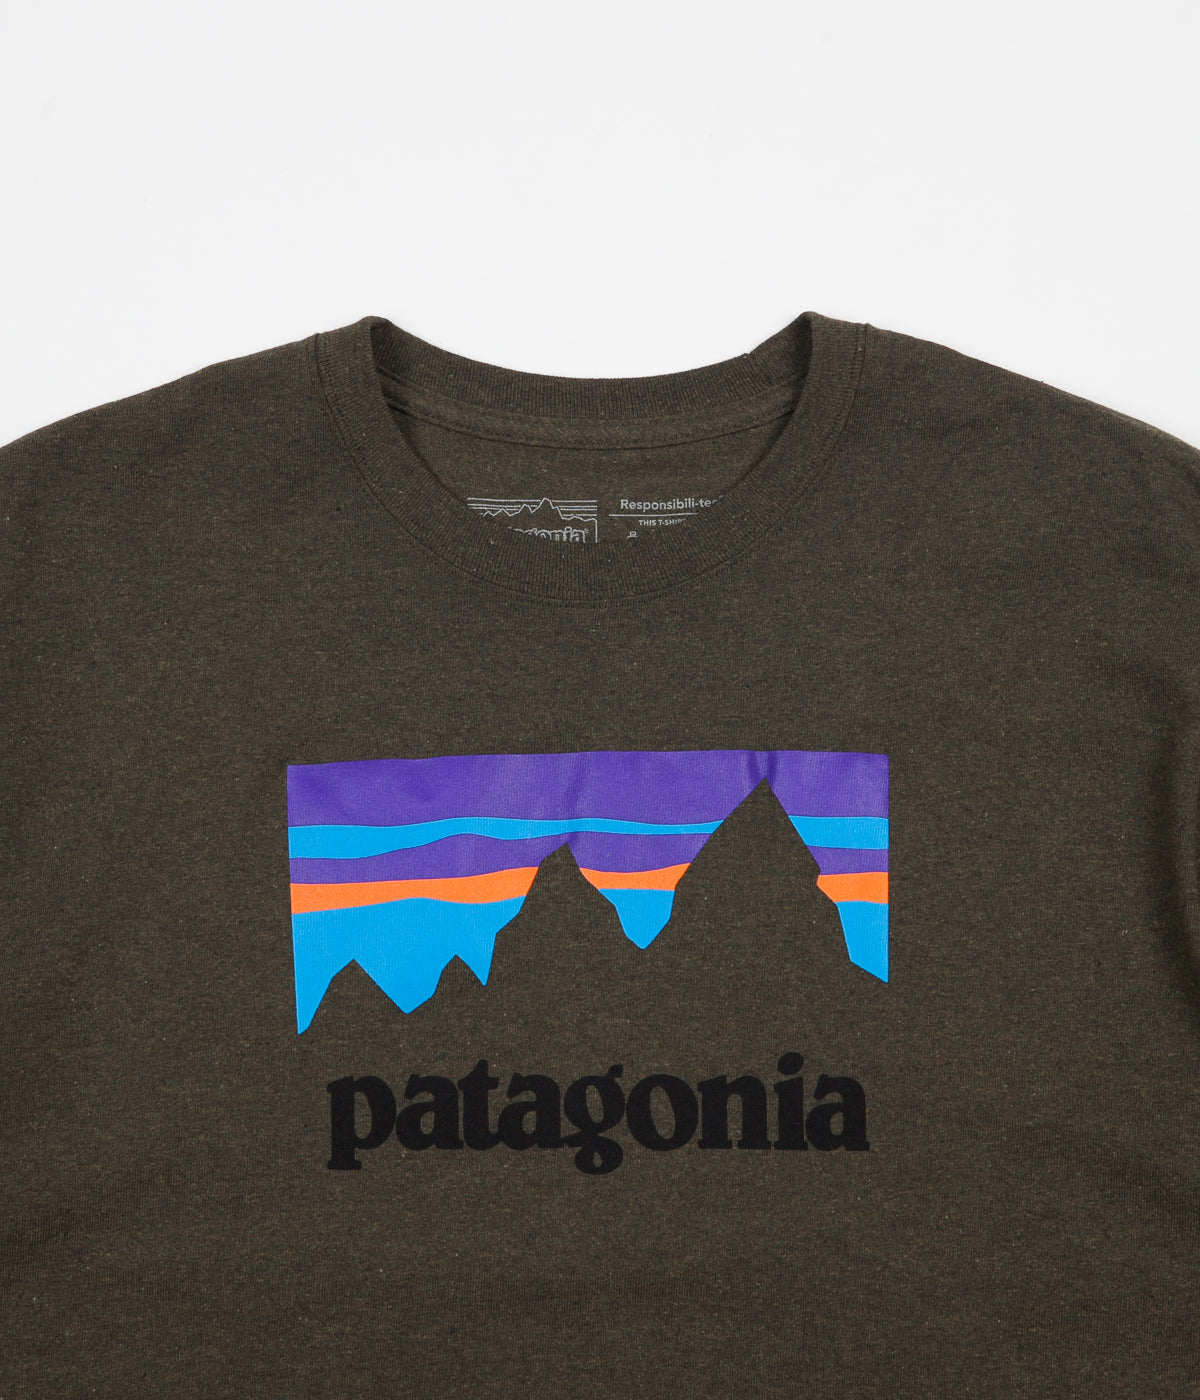 Patagonia Shop Sticker Responsibili-Tee T-Shirt - Sediment